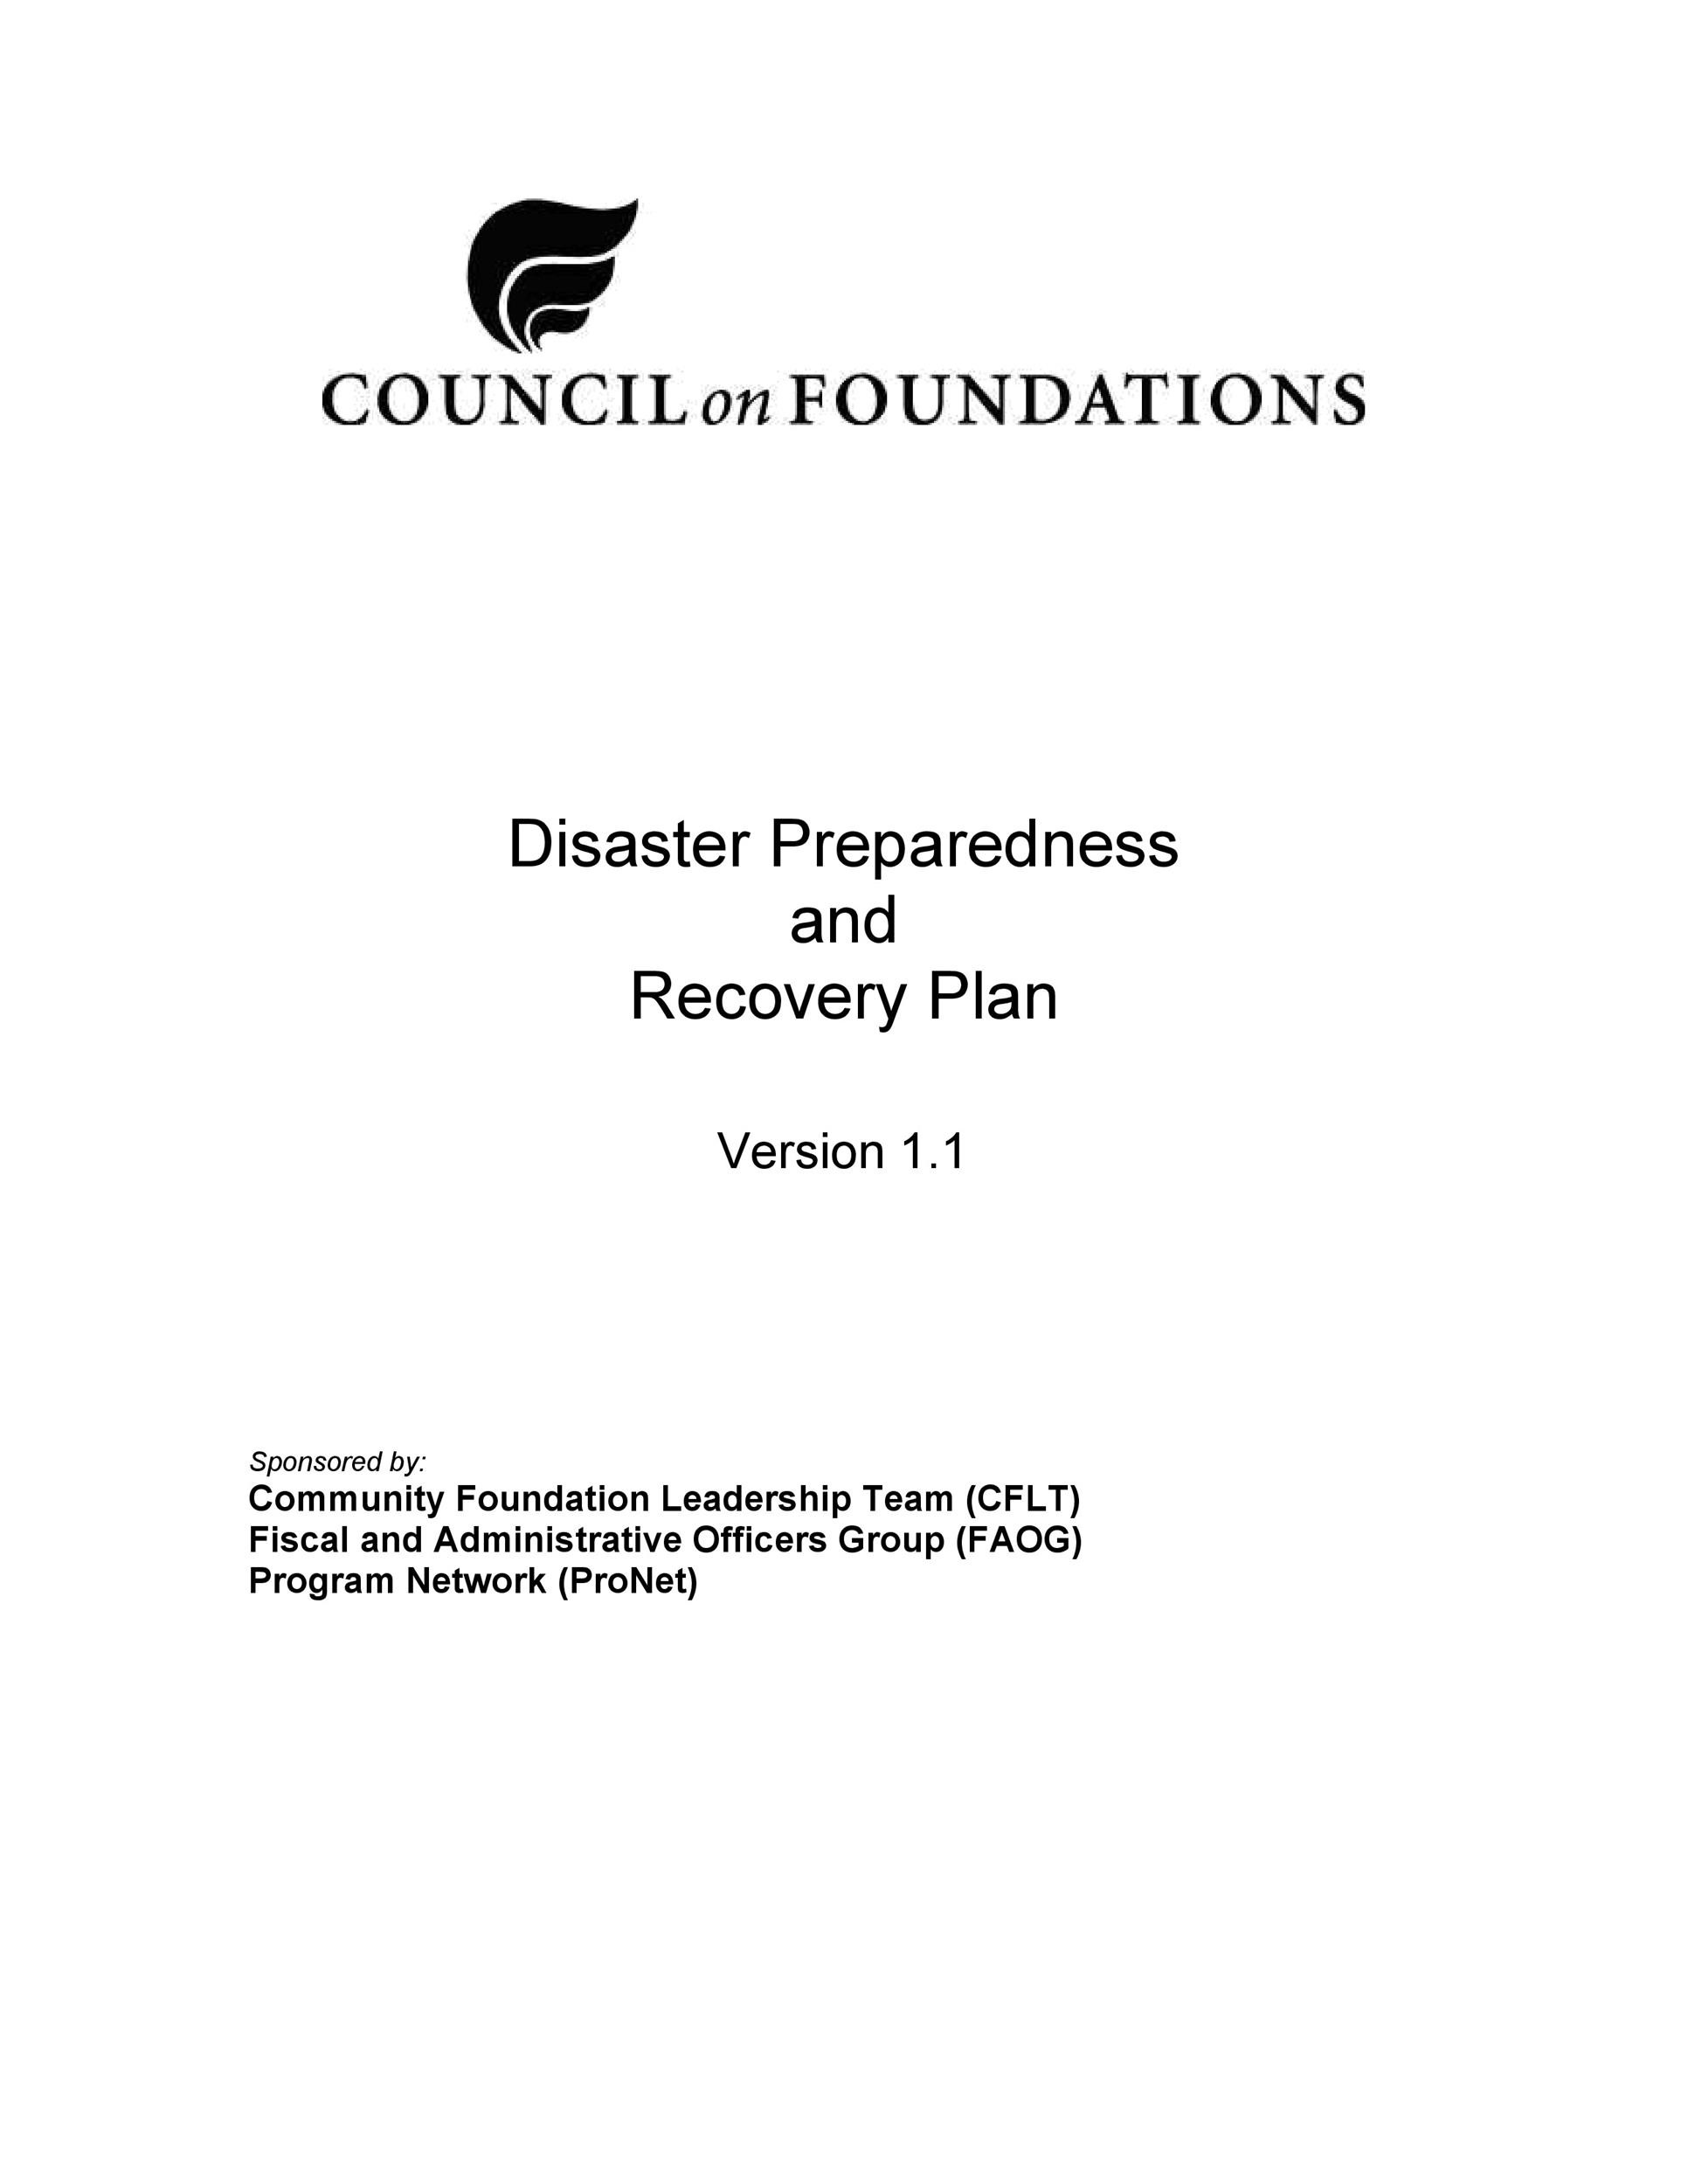 52 Effective Disaster Recovery Plan Templates DRP - Template Lab - recovery plans